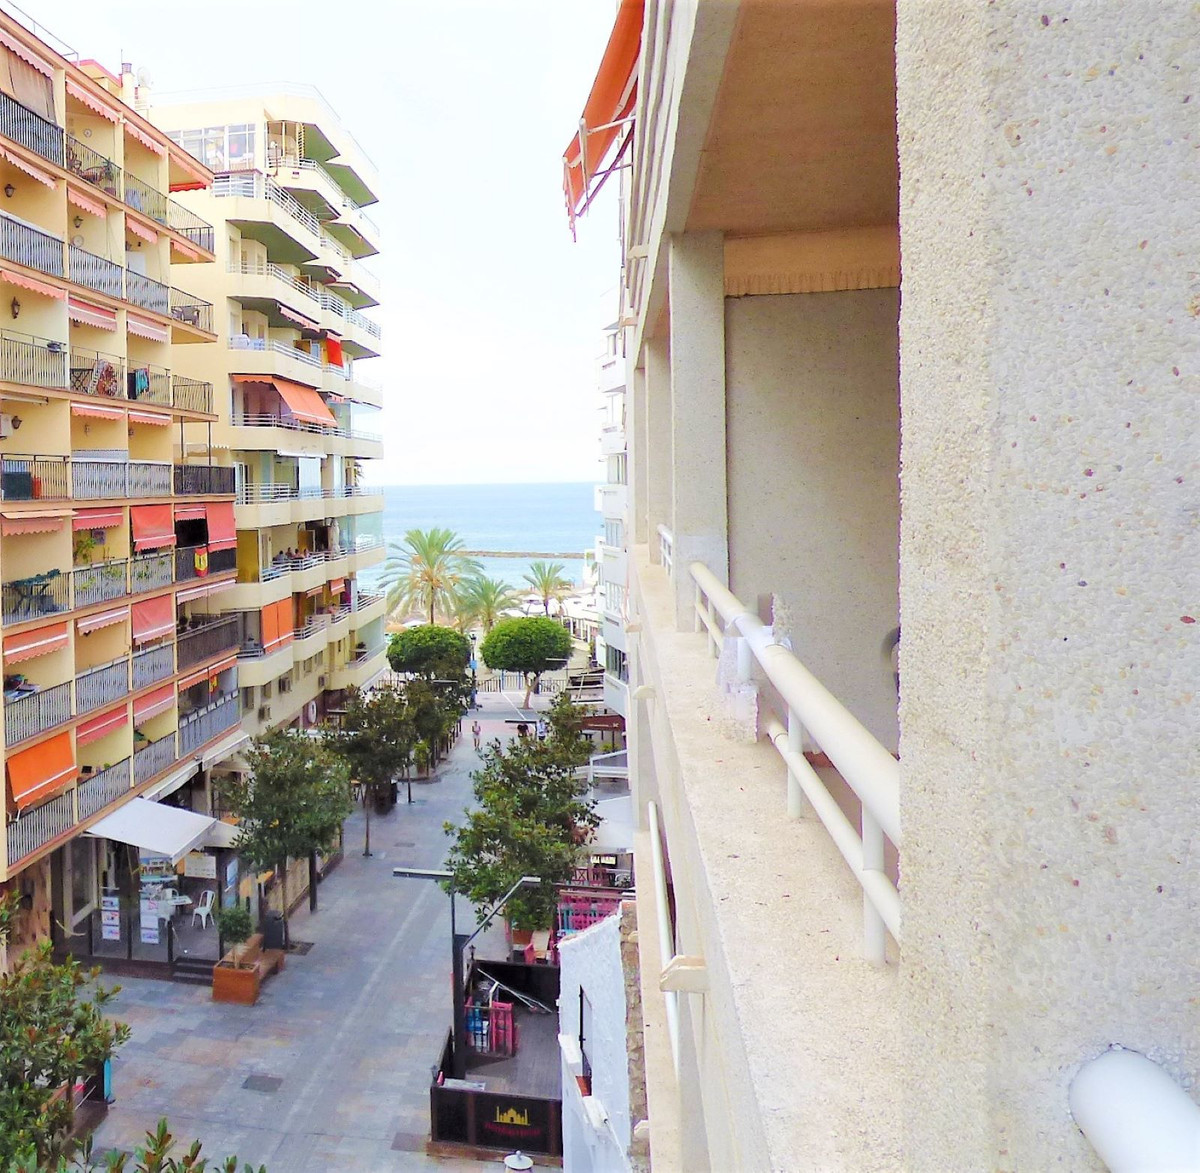 Apartment next to the promenade and the beach, located on Miguel Cano avenue, in the Milenium buildi, Spain